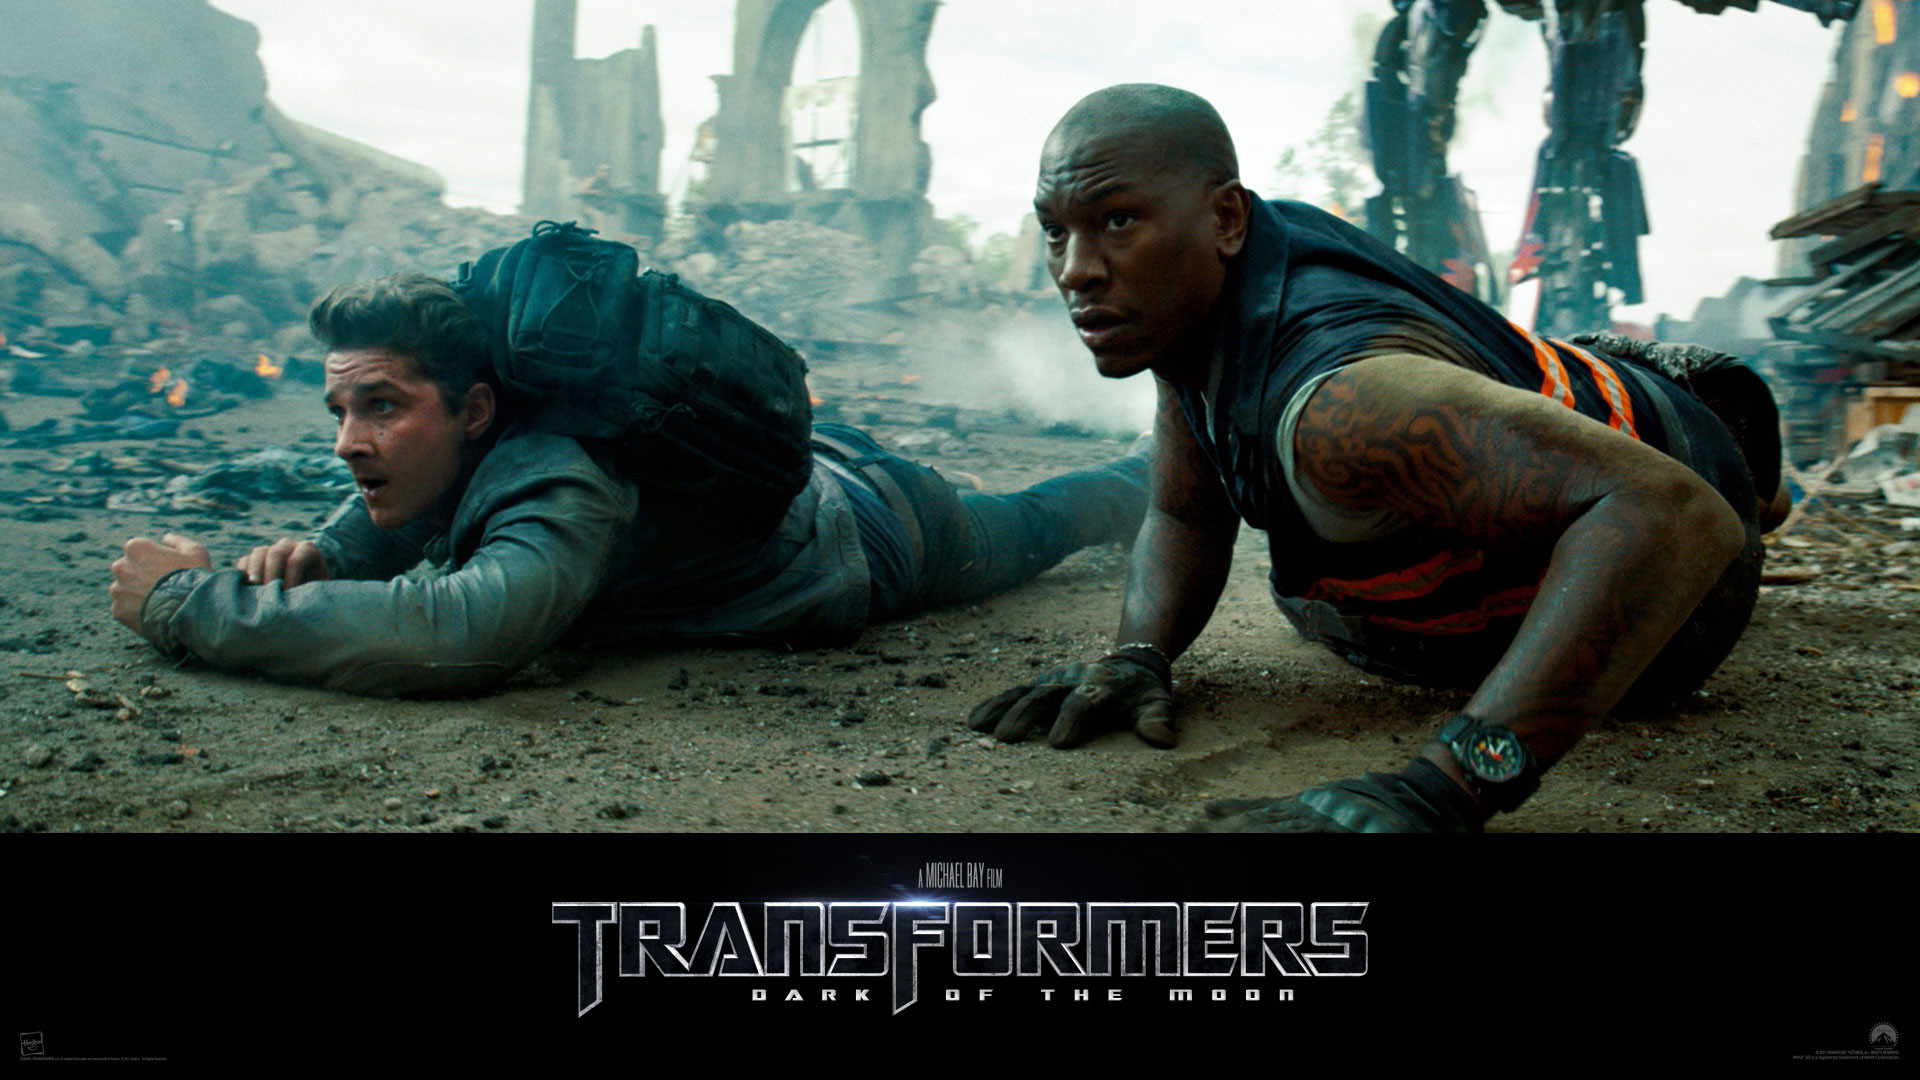 Transformers: Dark of the Moon – Wallpaper with Shia LaBeouf & Tyrese Gibson